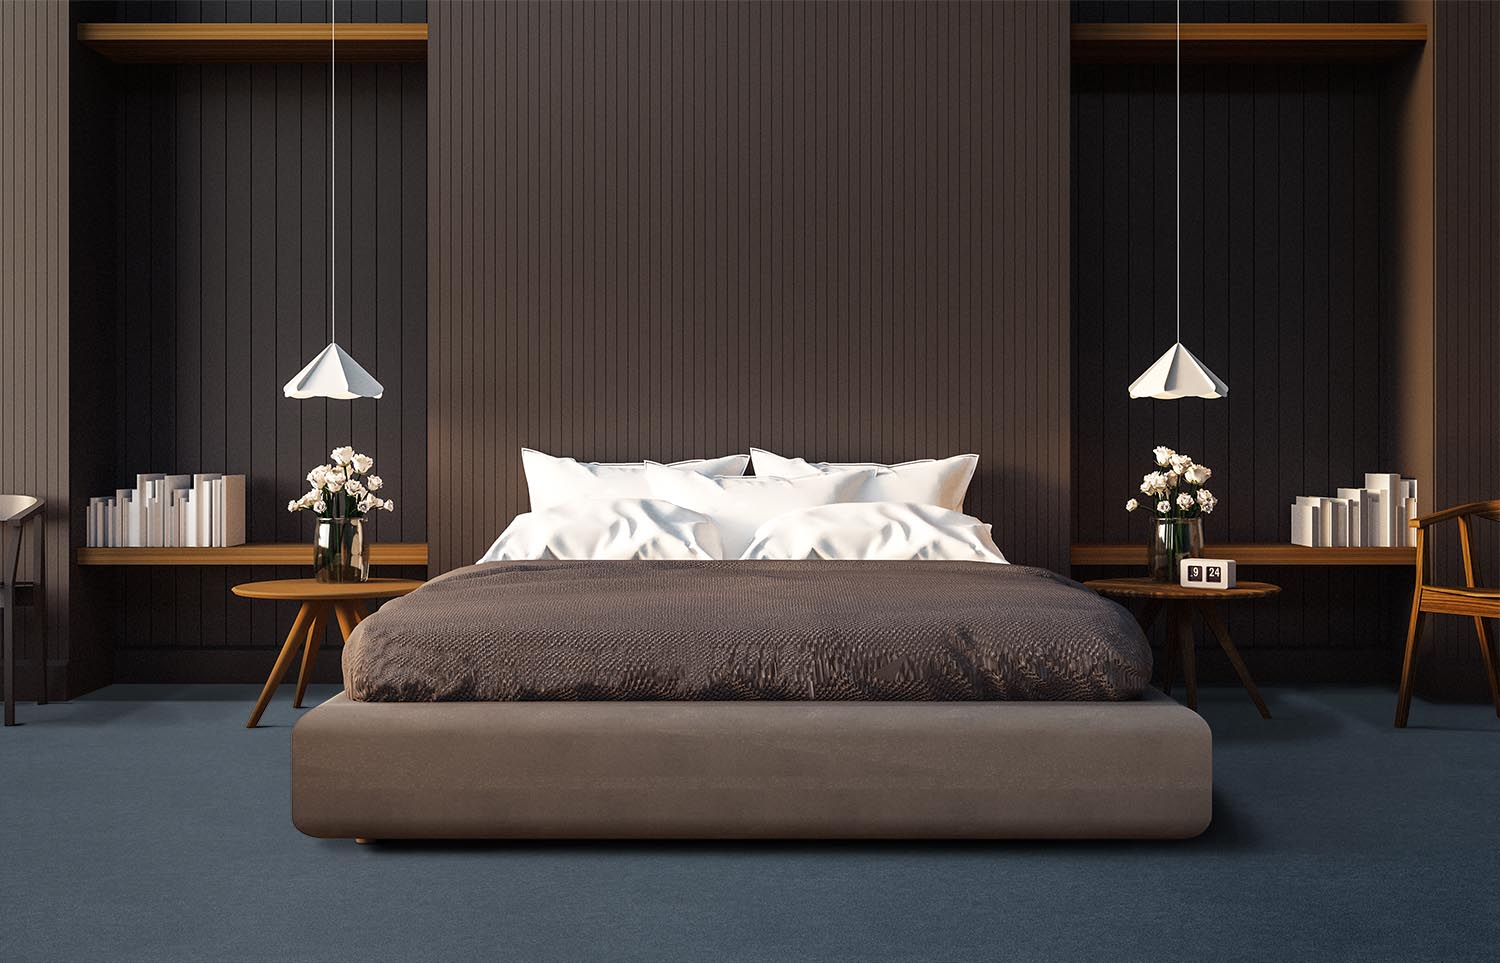 Softology - S201 - Suave contemporary bedroom